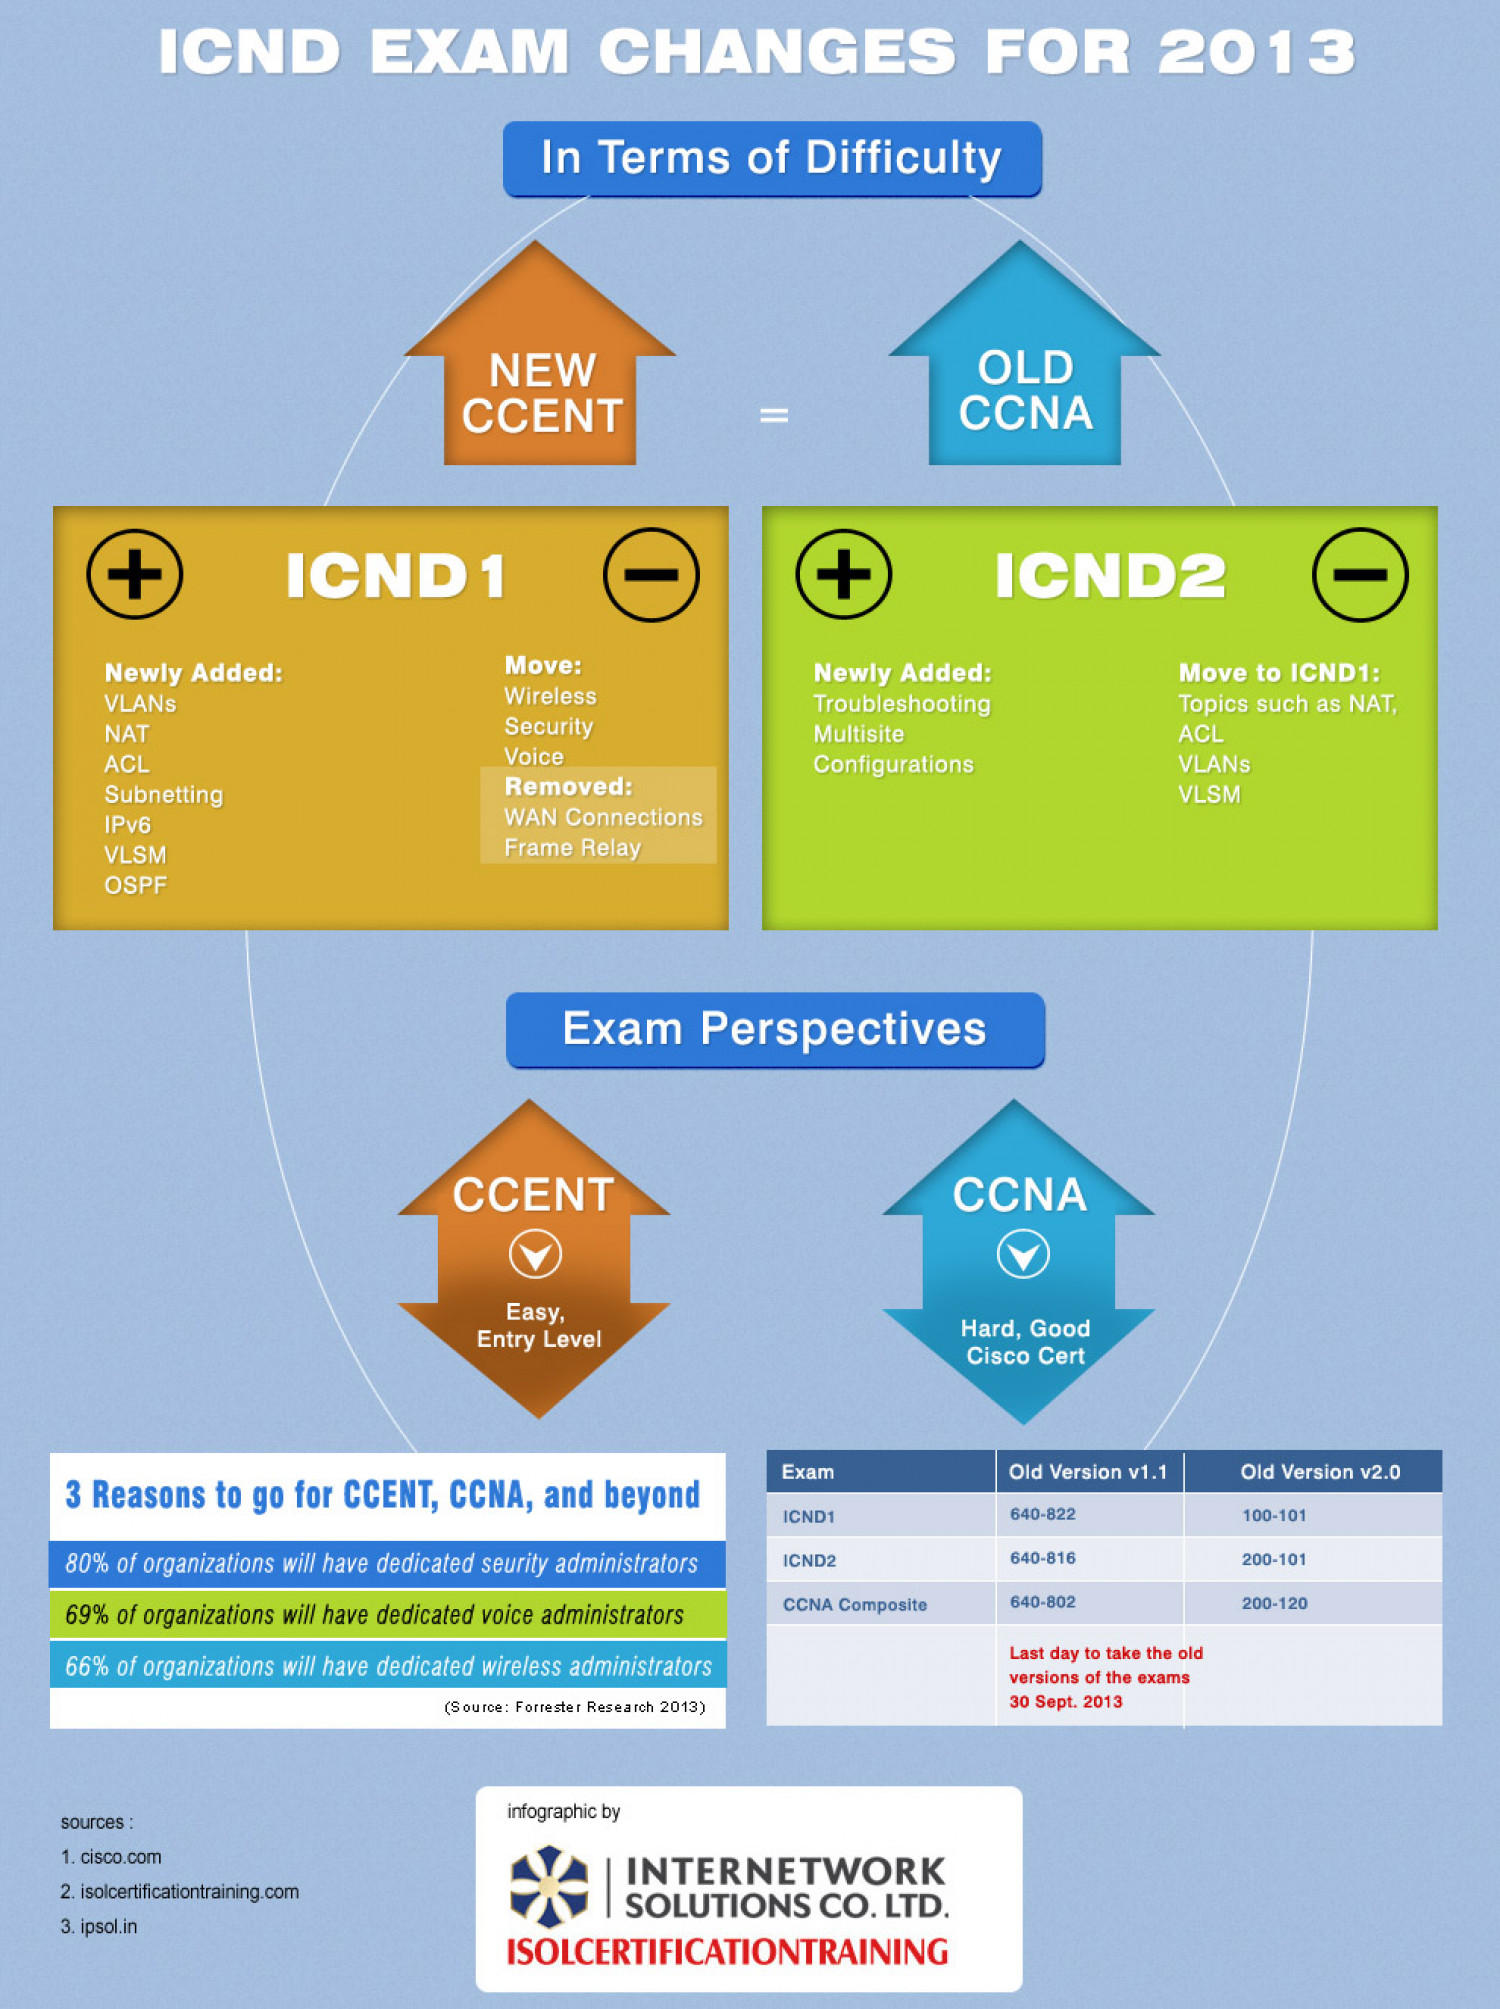 ICND EXAM CHANGES FOR 2013 Infographic